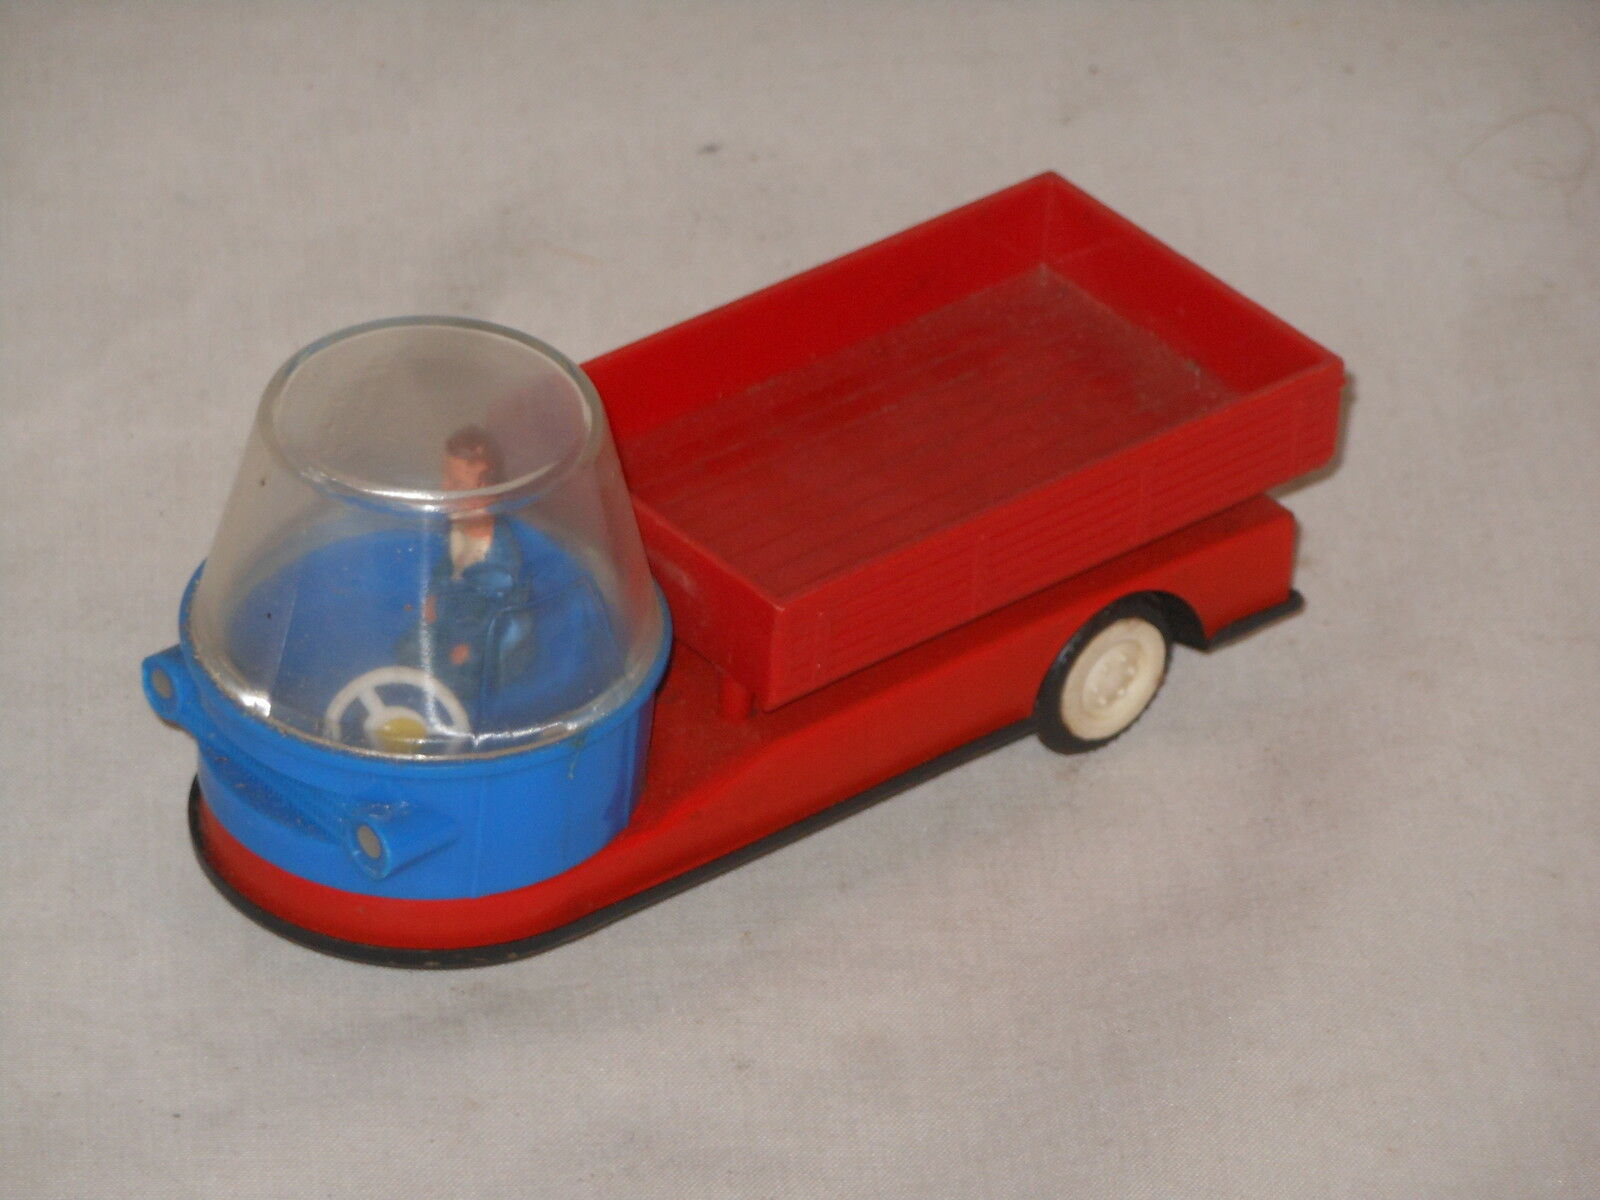 Interflug - Service Airfield Vehicle by Msw - 60èr Years - Vintage Toy